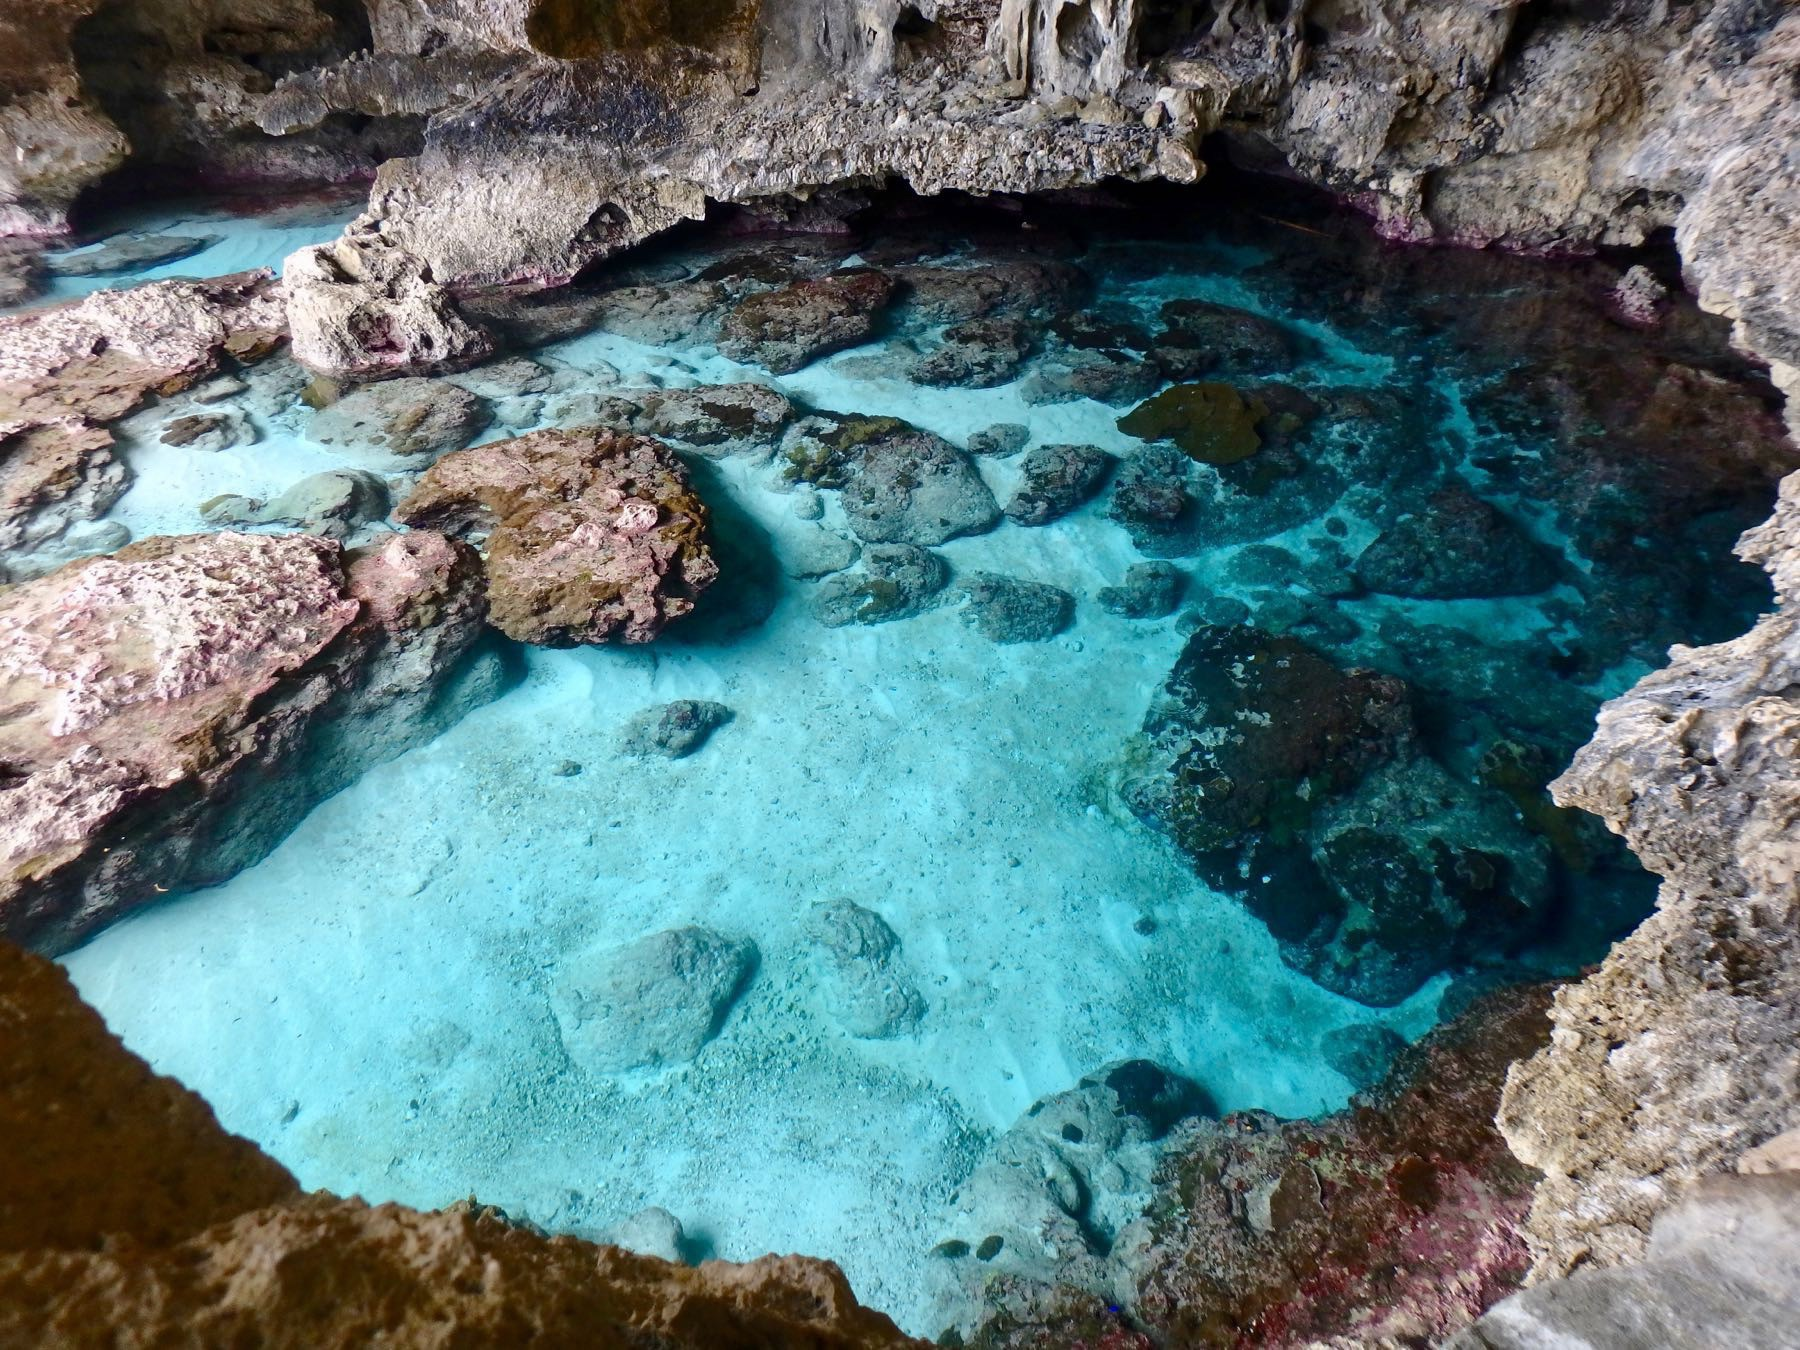 Blue water pool in a cave.